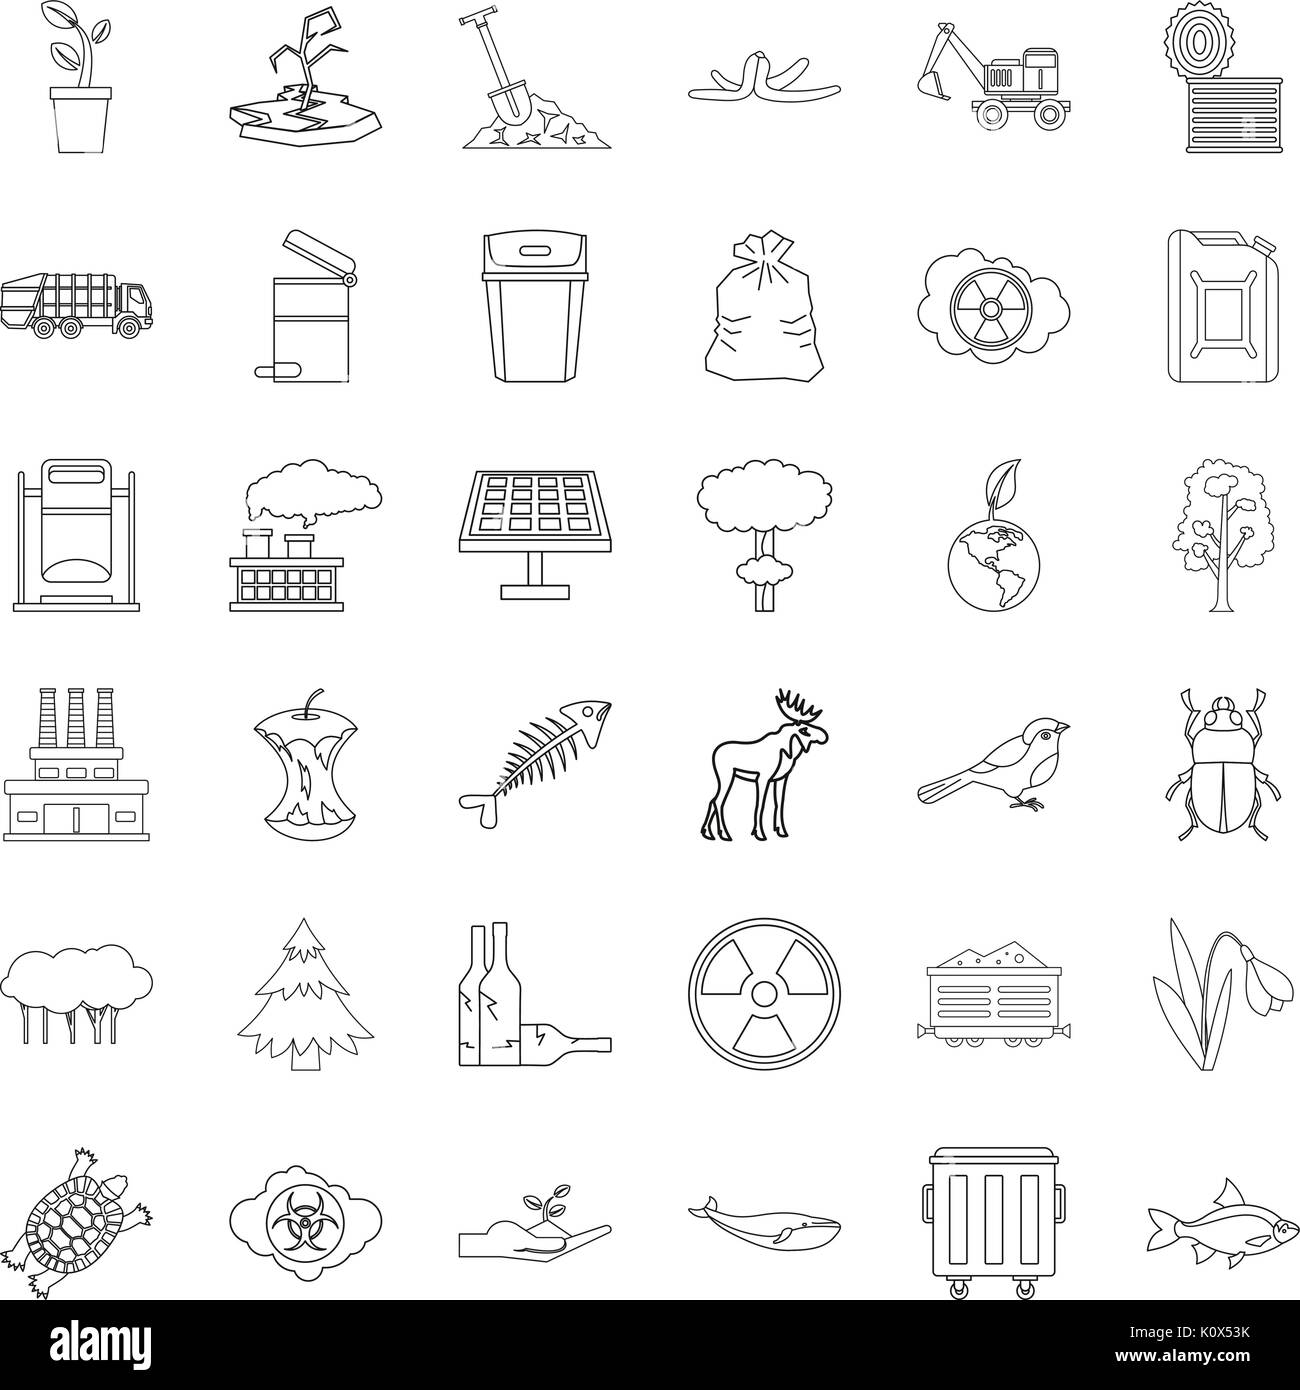 Catastrophe icons set, outline style - Stock Image